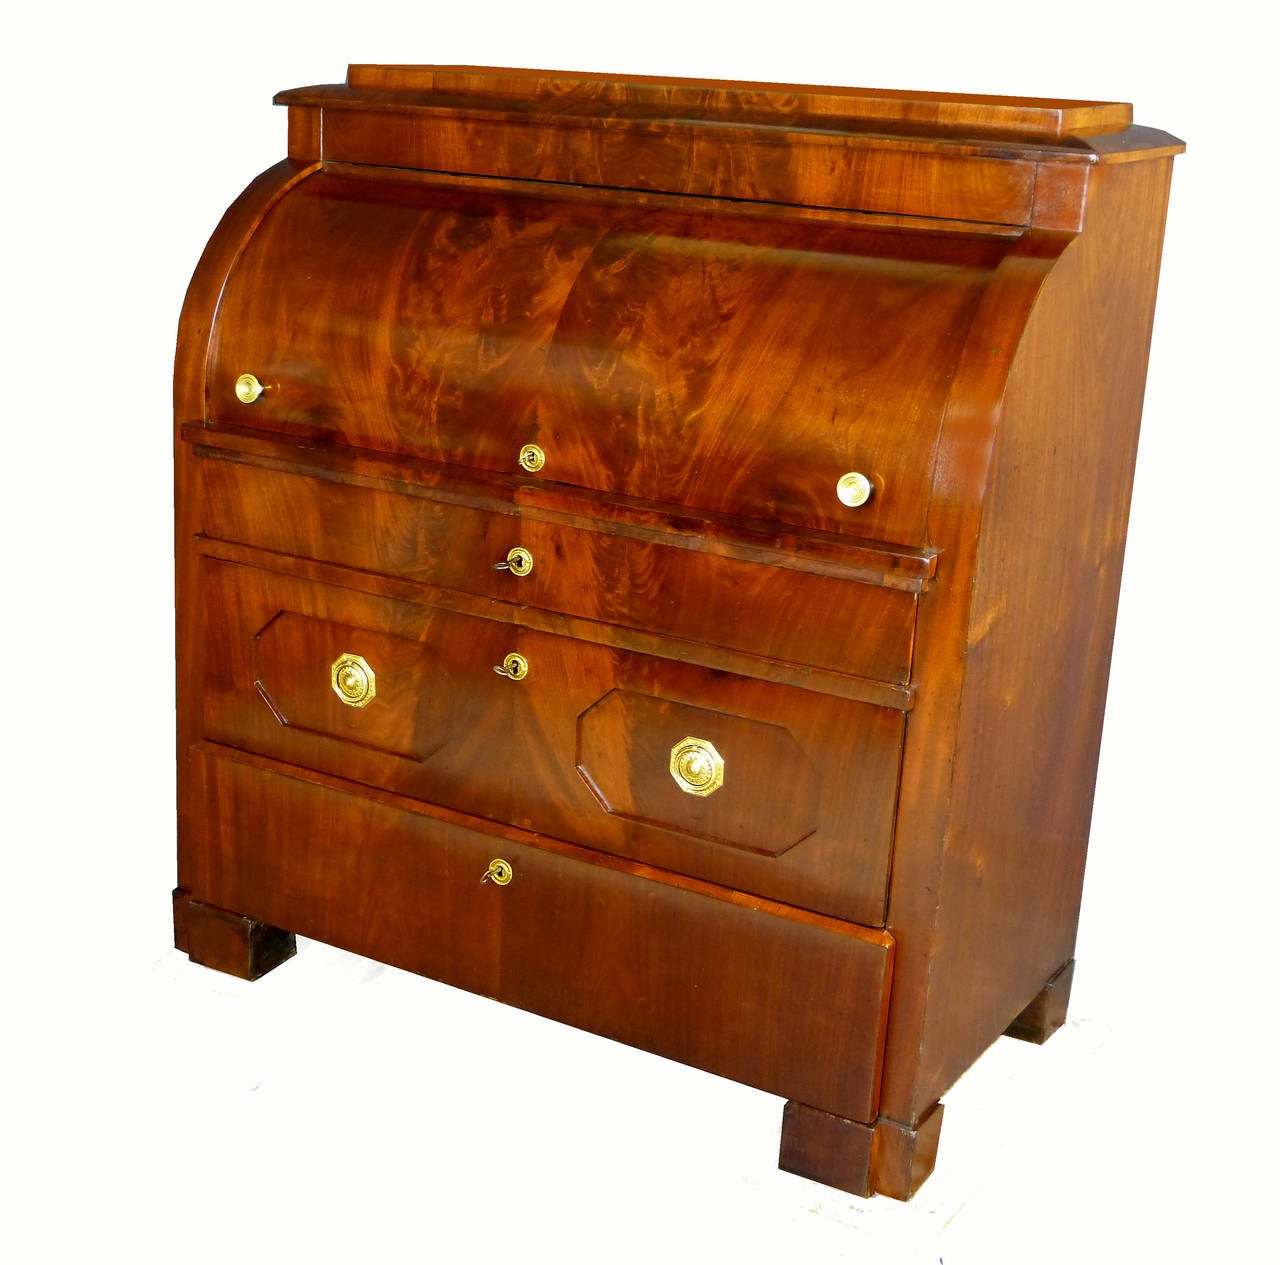 biedermeier cylinder top bureau secretaire at 1stdibs